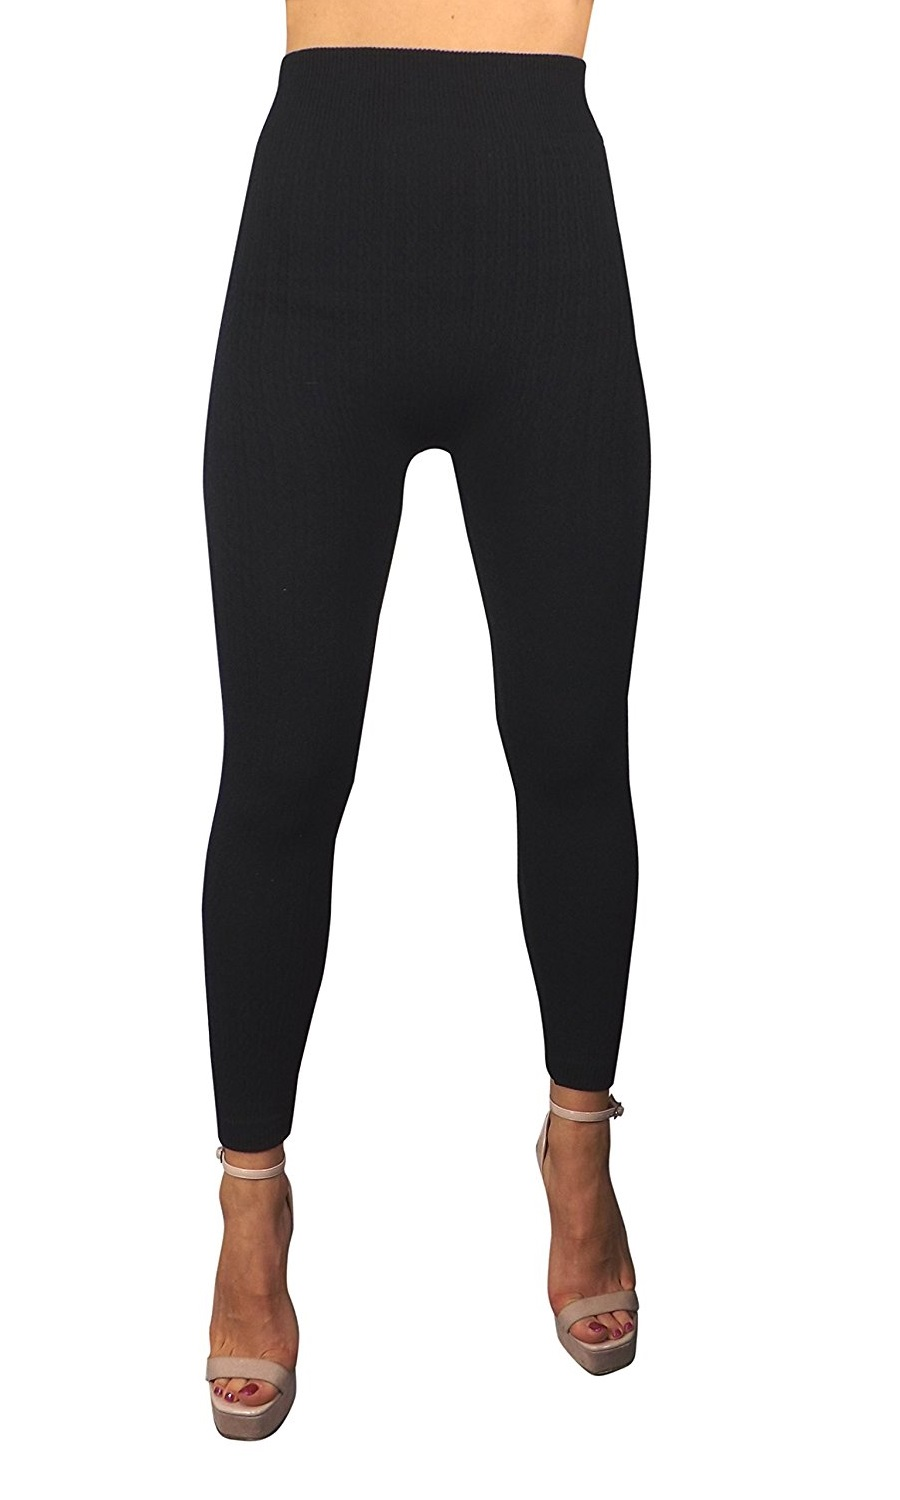 2c8c6c5c40020 Black High Waist Slimming Seamless Fleece Lined Winter Leggings Yoga Pants  Braided